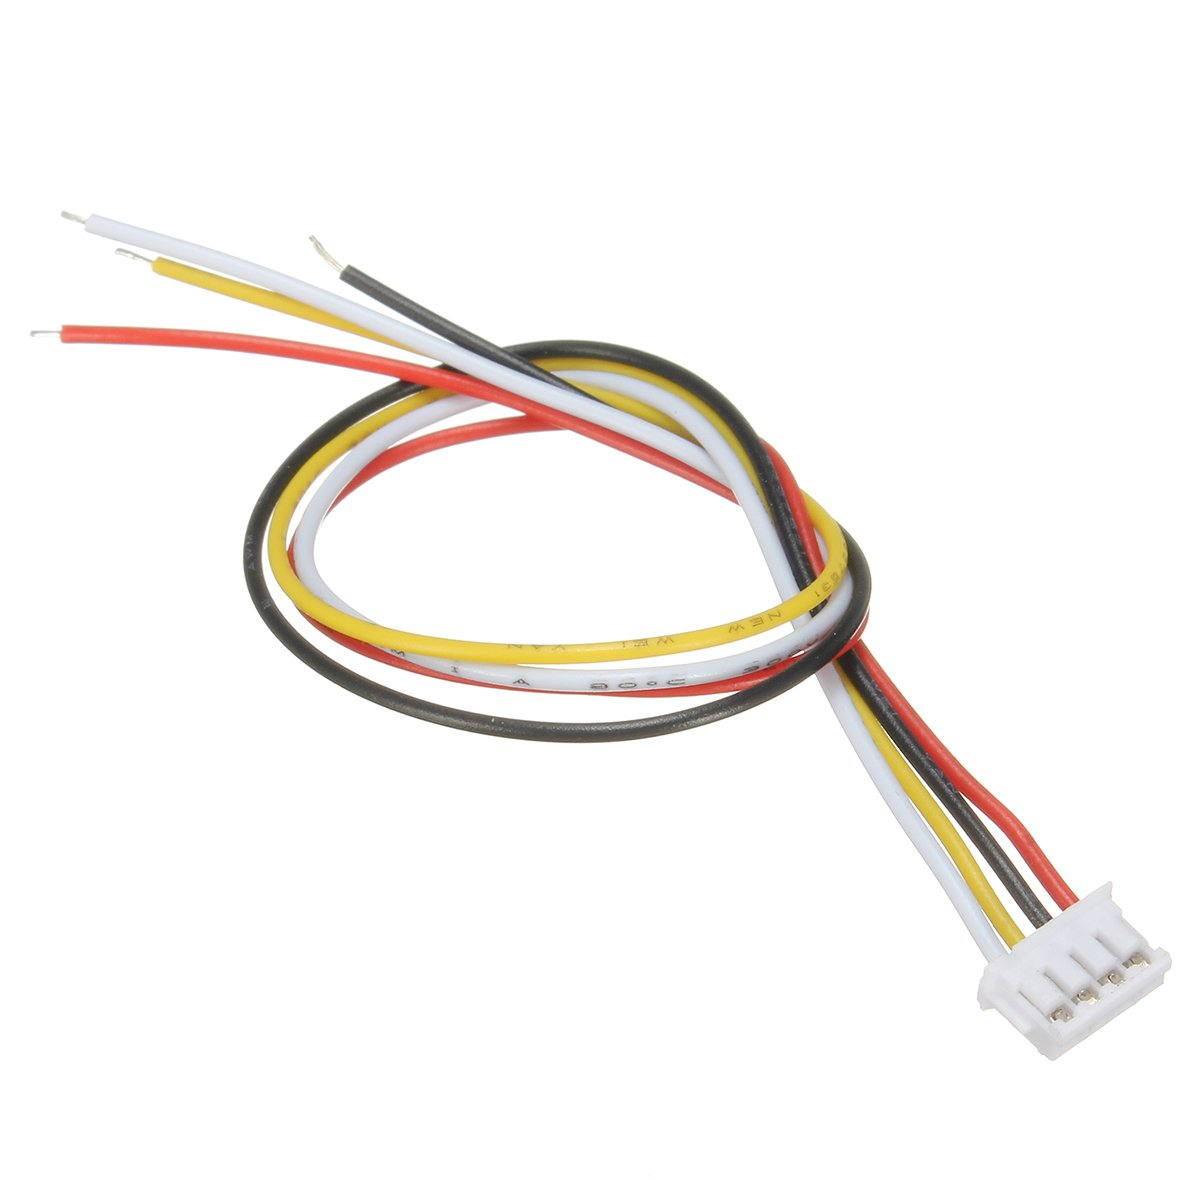 TuToy / 10 Sets Mini Micro Jst 1.5Mm Zh 4-Pin Conector Enchufe Con Cables Cables 150Mm